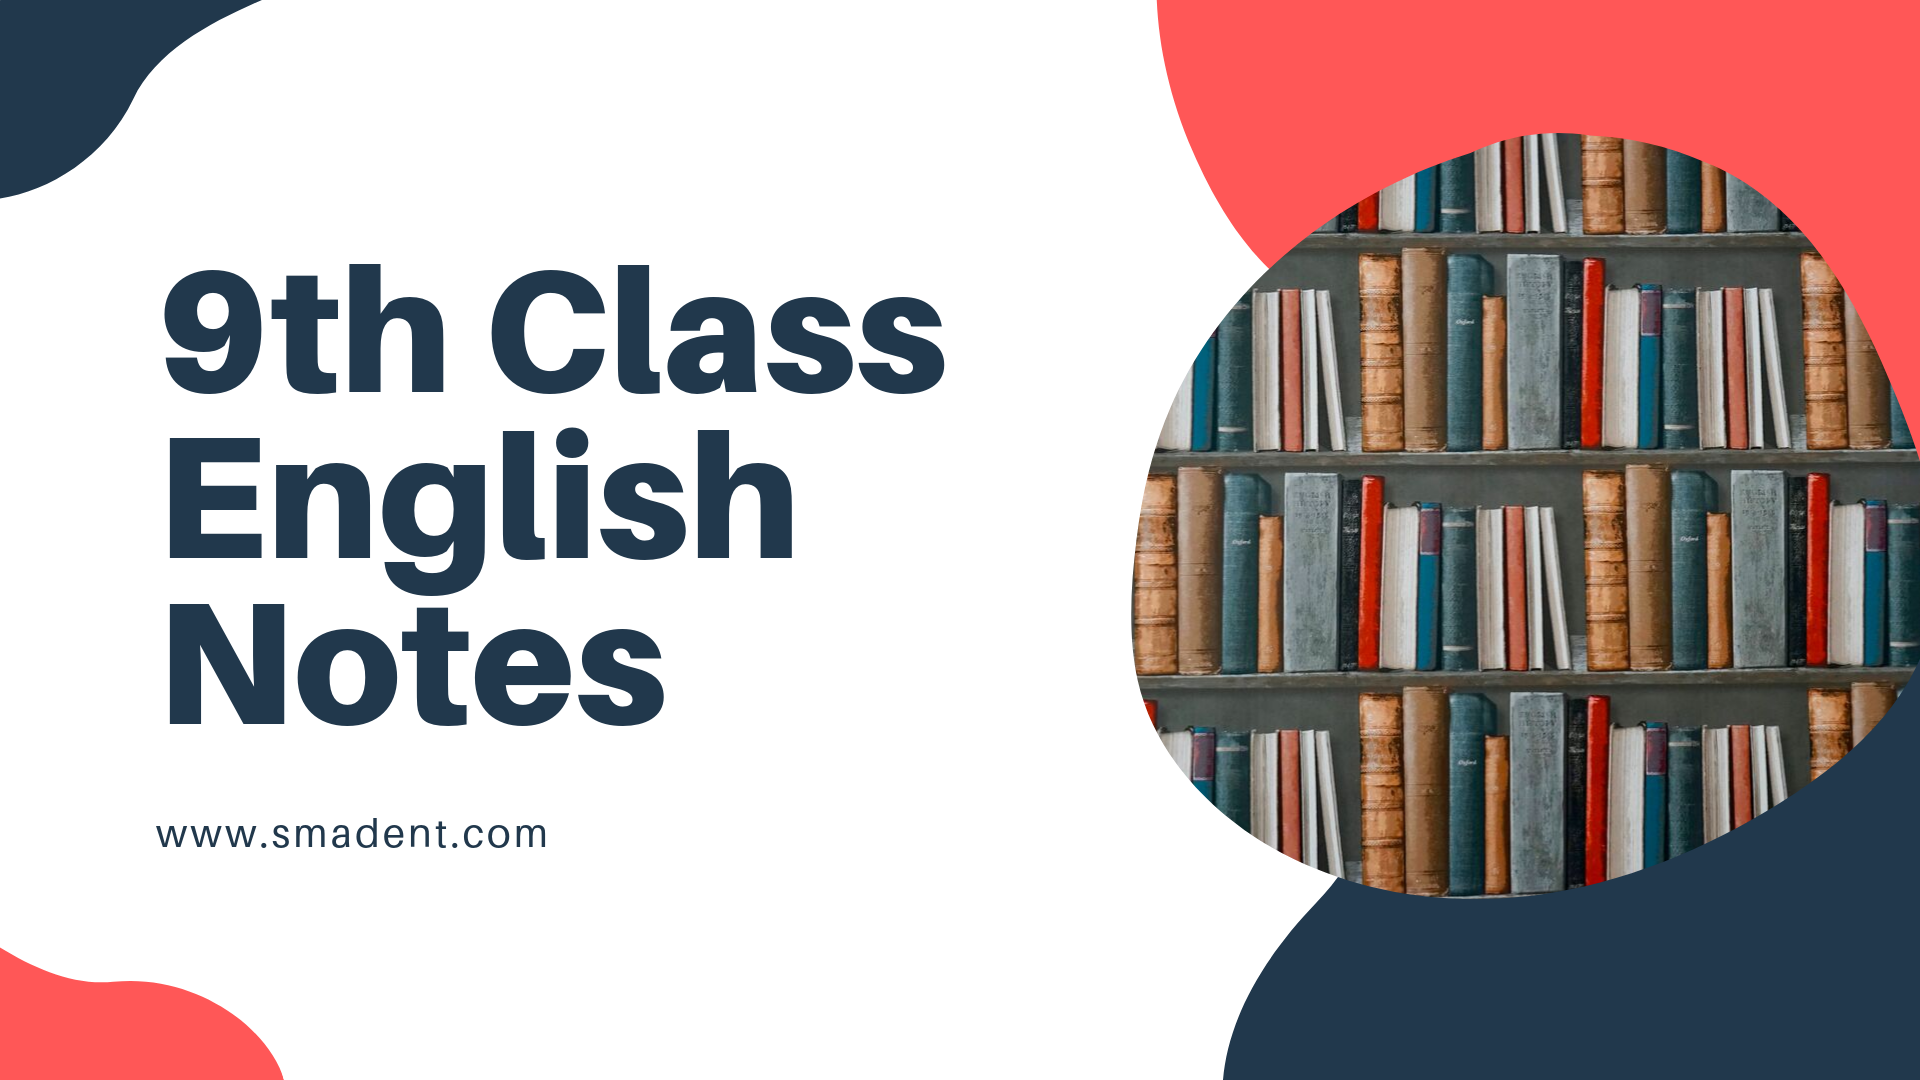 9th Class English Notes [Updated Edition]